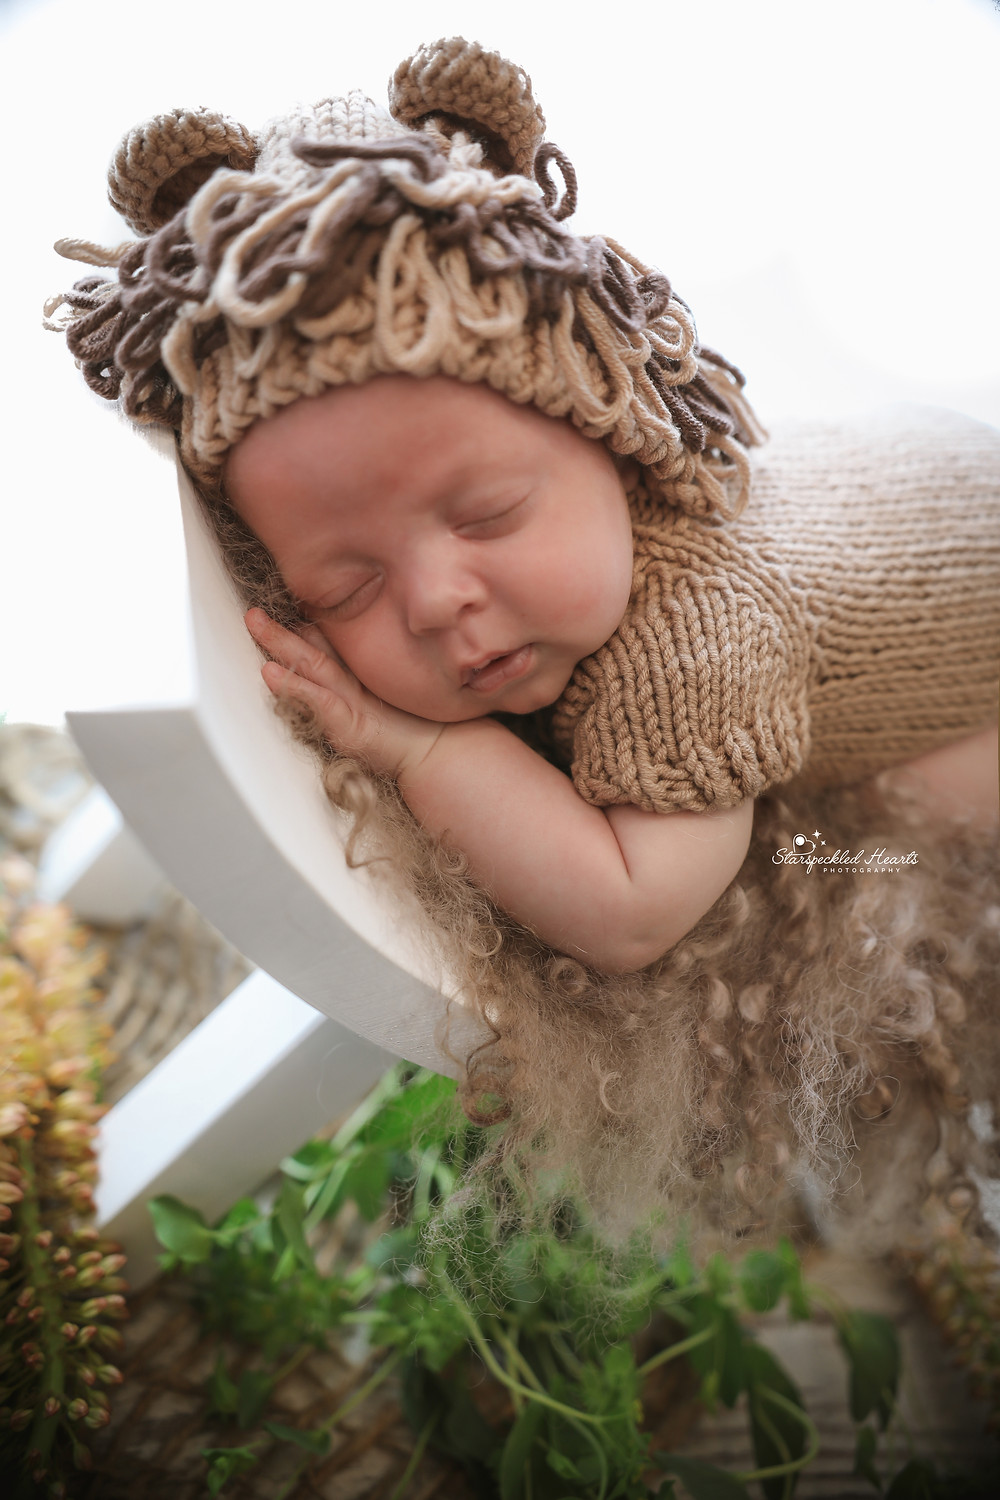 sleeping newborn wearing a brown knitted lion bonnet and matching romper, lying on a curve bench